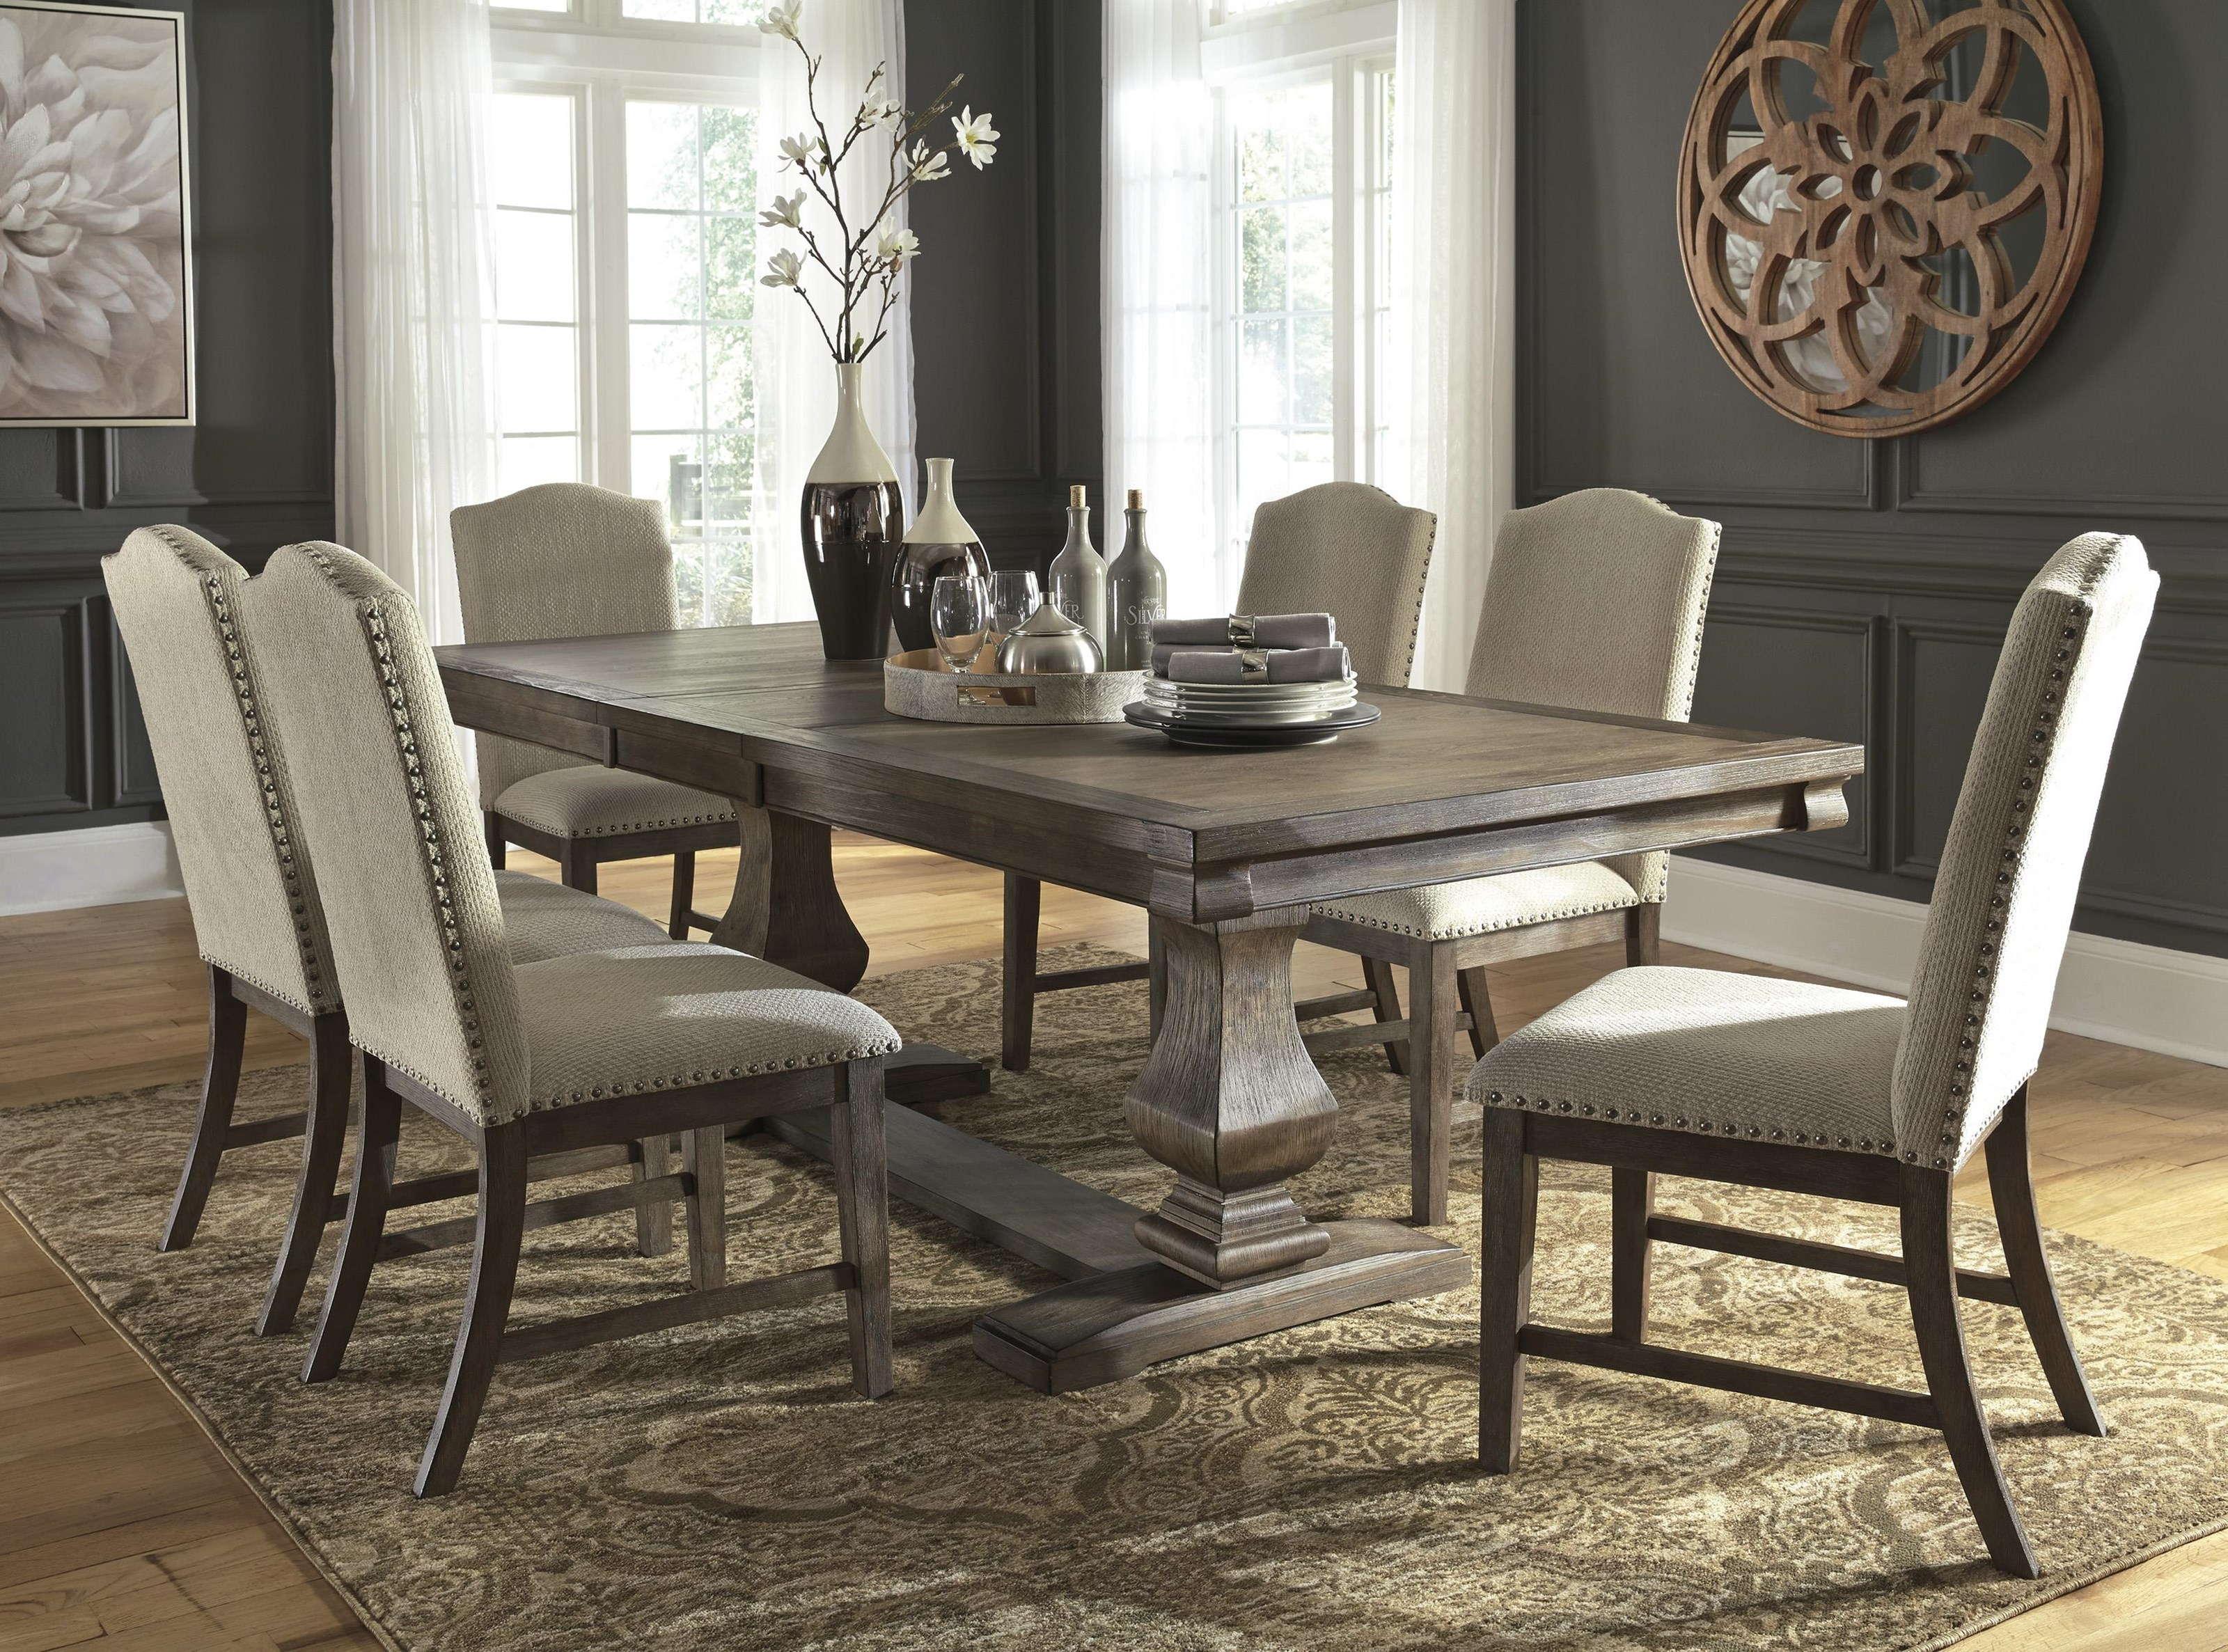 Millennium Johnelle D776 55t 55b 6x01 60 8 Pc Dining Room Ext Table 6 Uph Chairs And Server Set Sam Levitz Furniture Dining 7 Or More Piece Sets